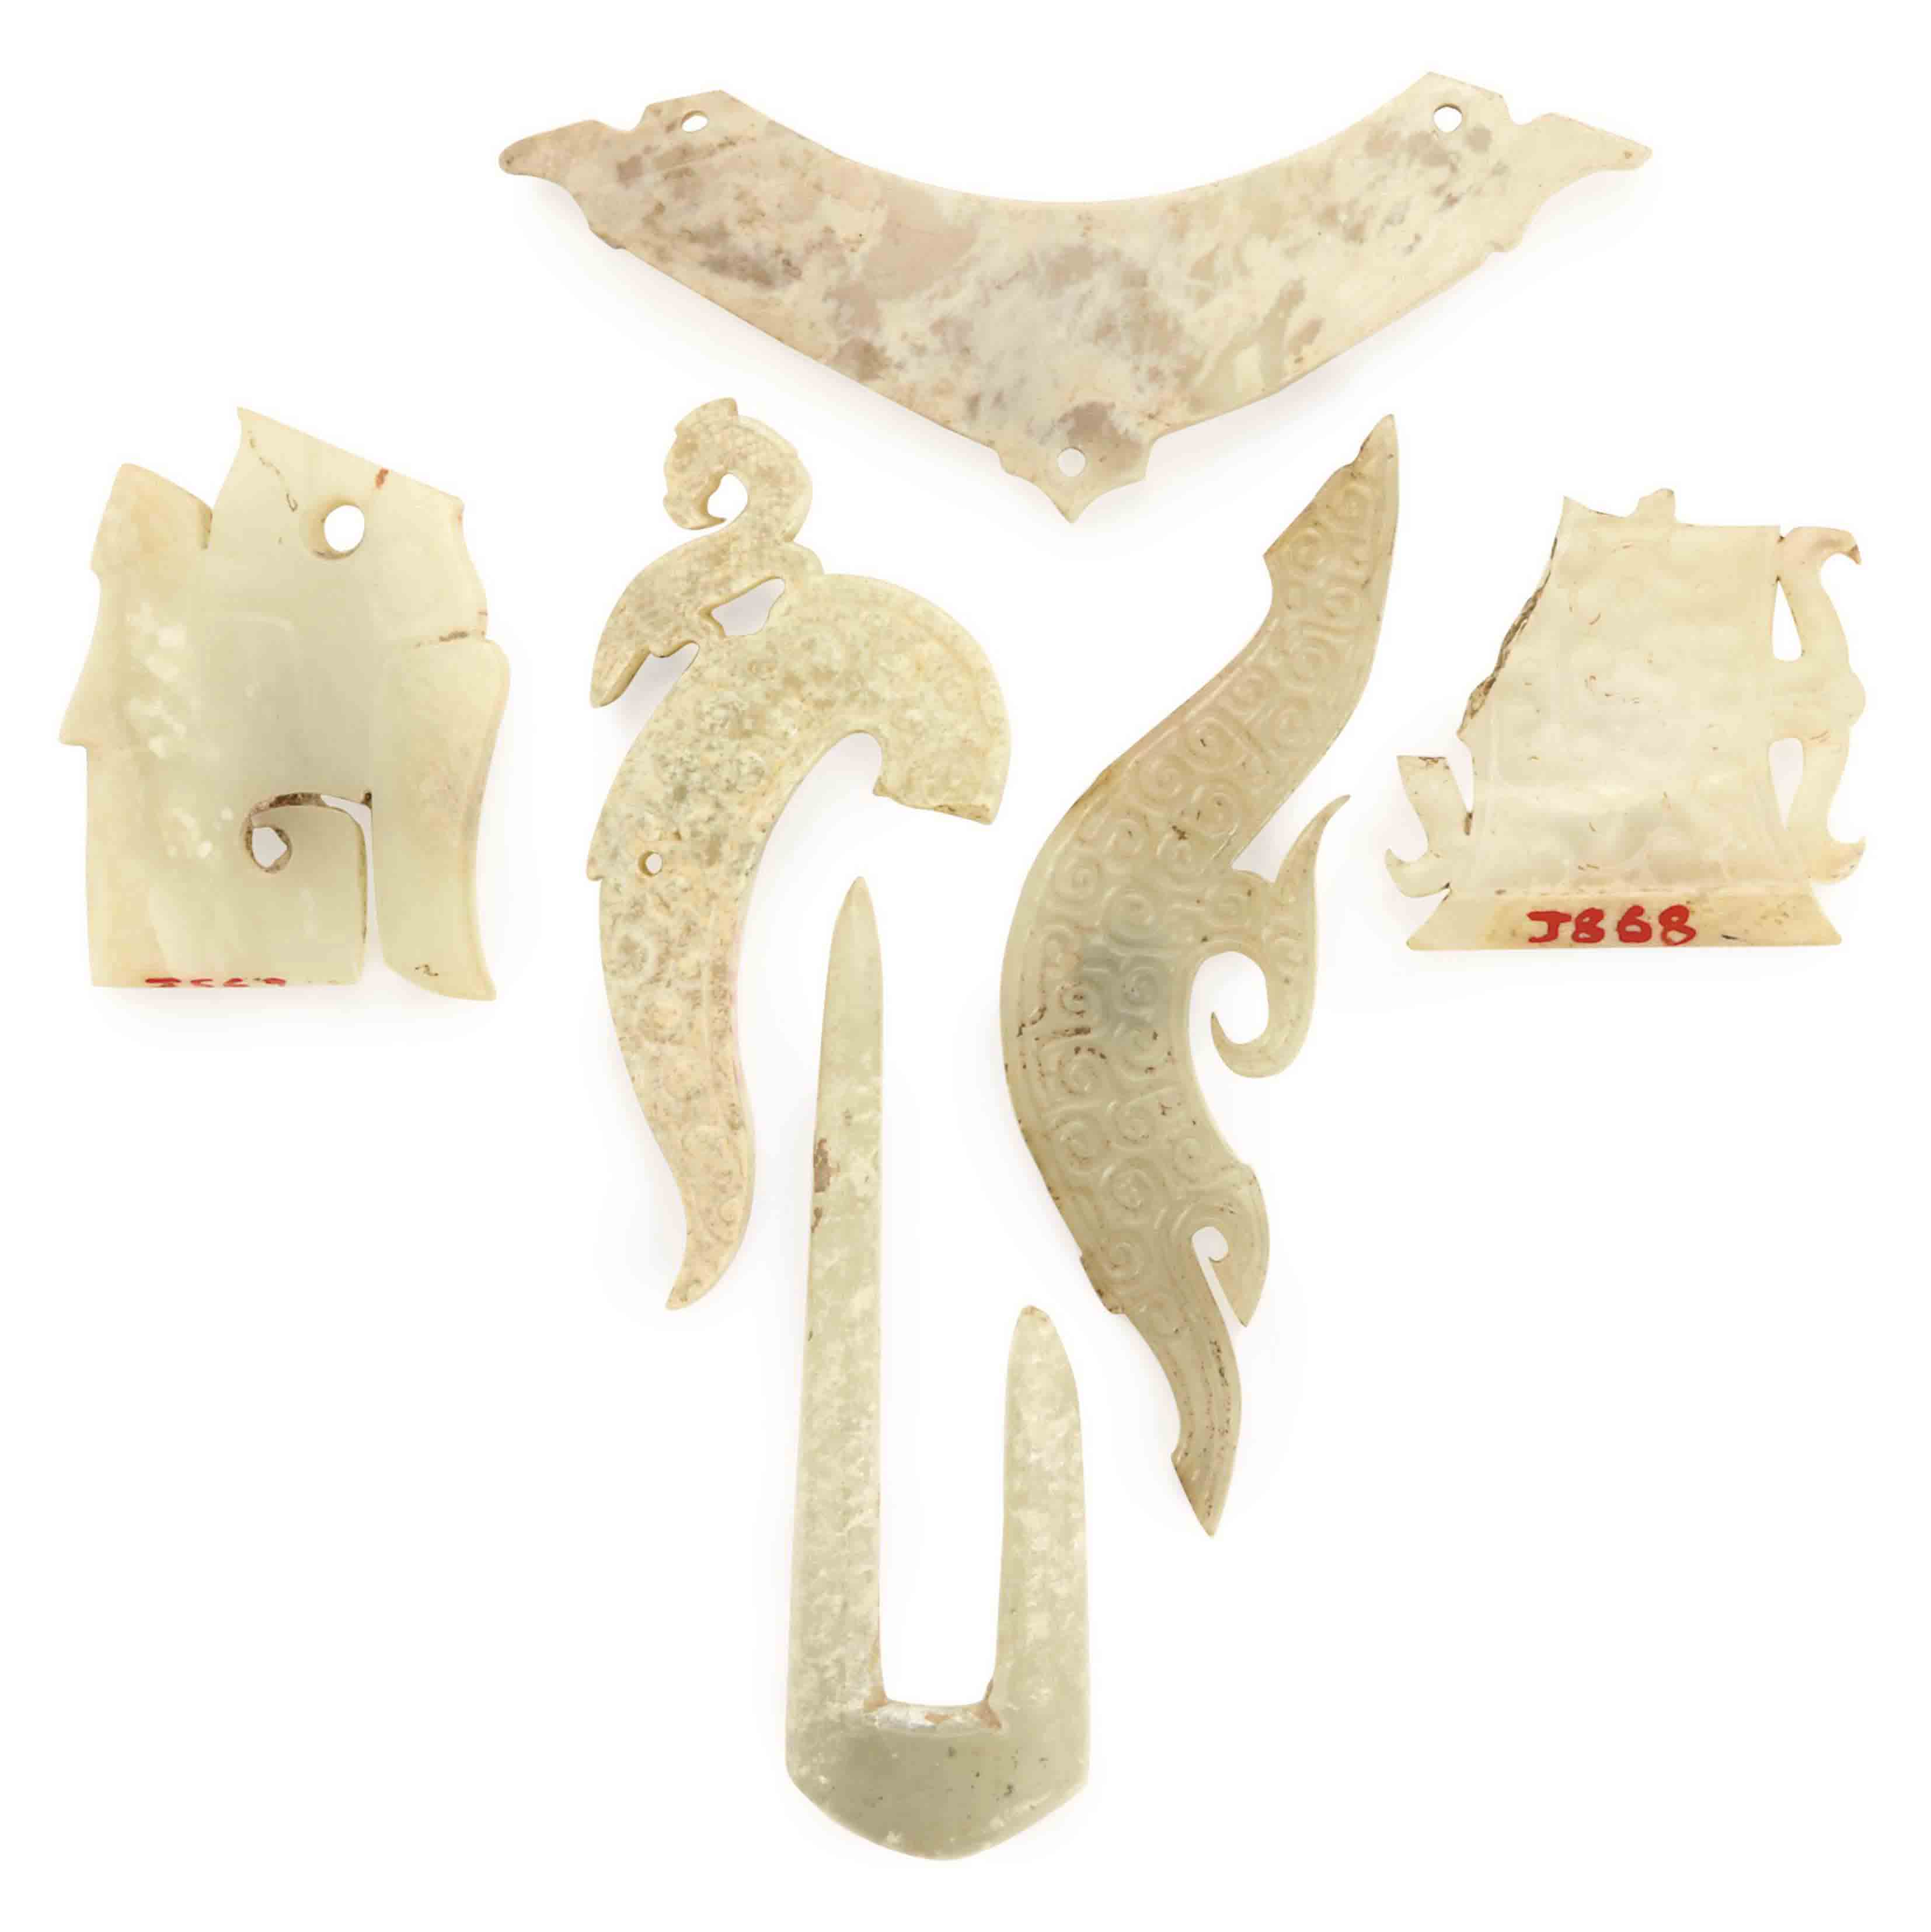 SIX CHINESE JADE OBJECTS,